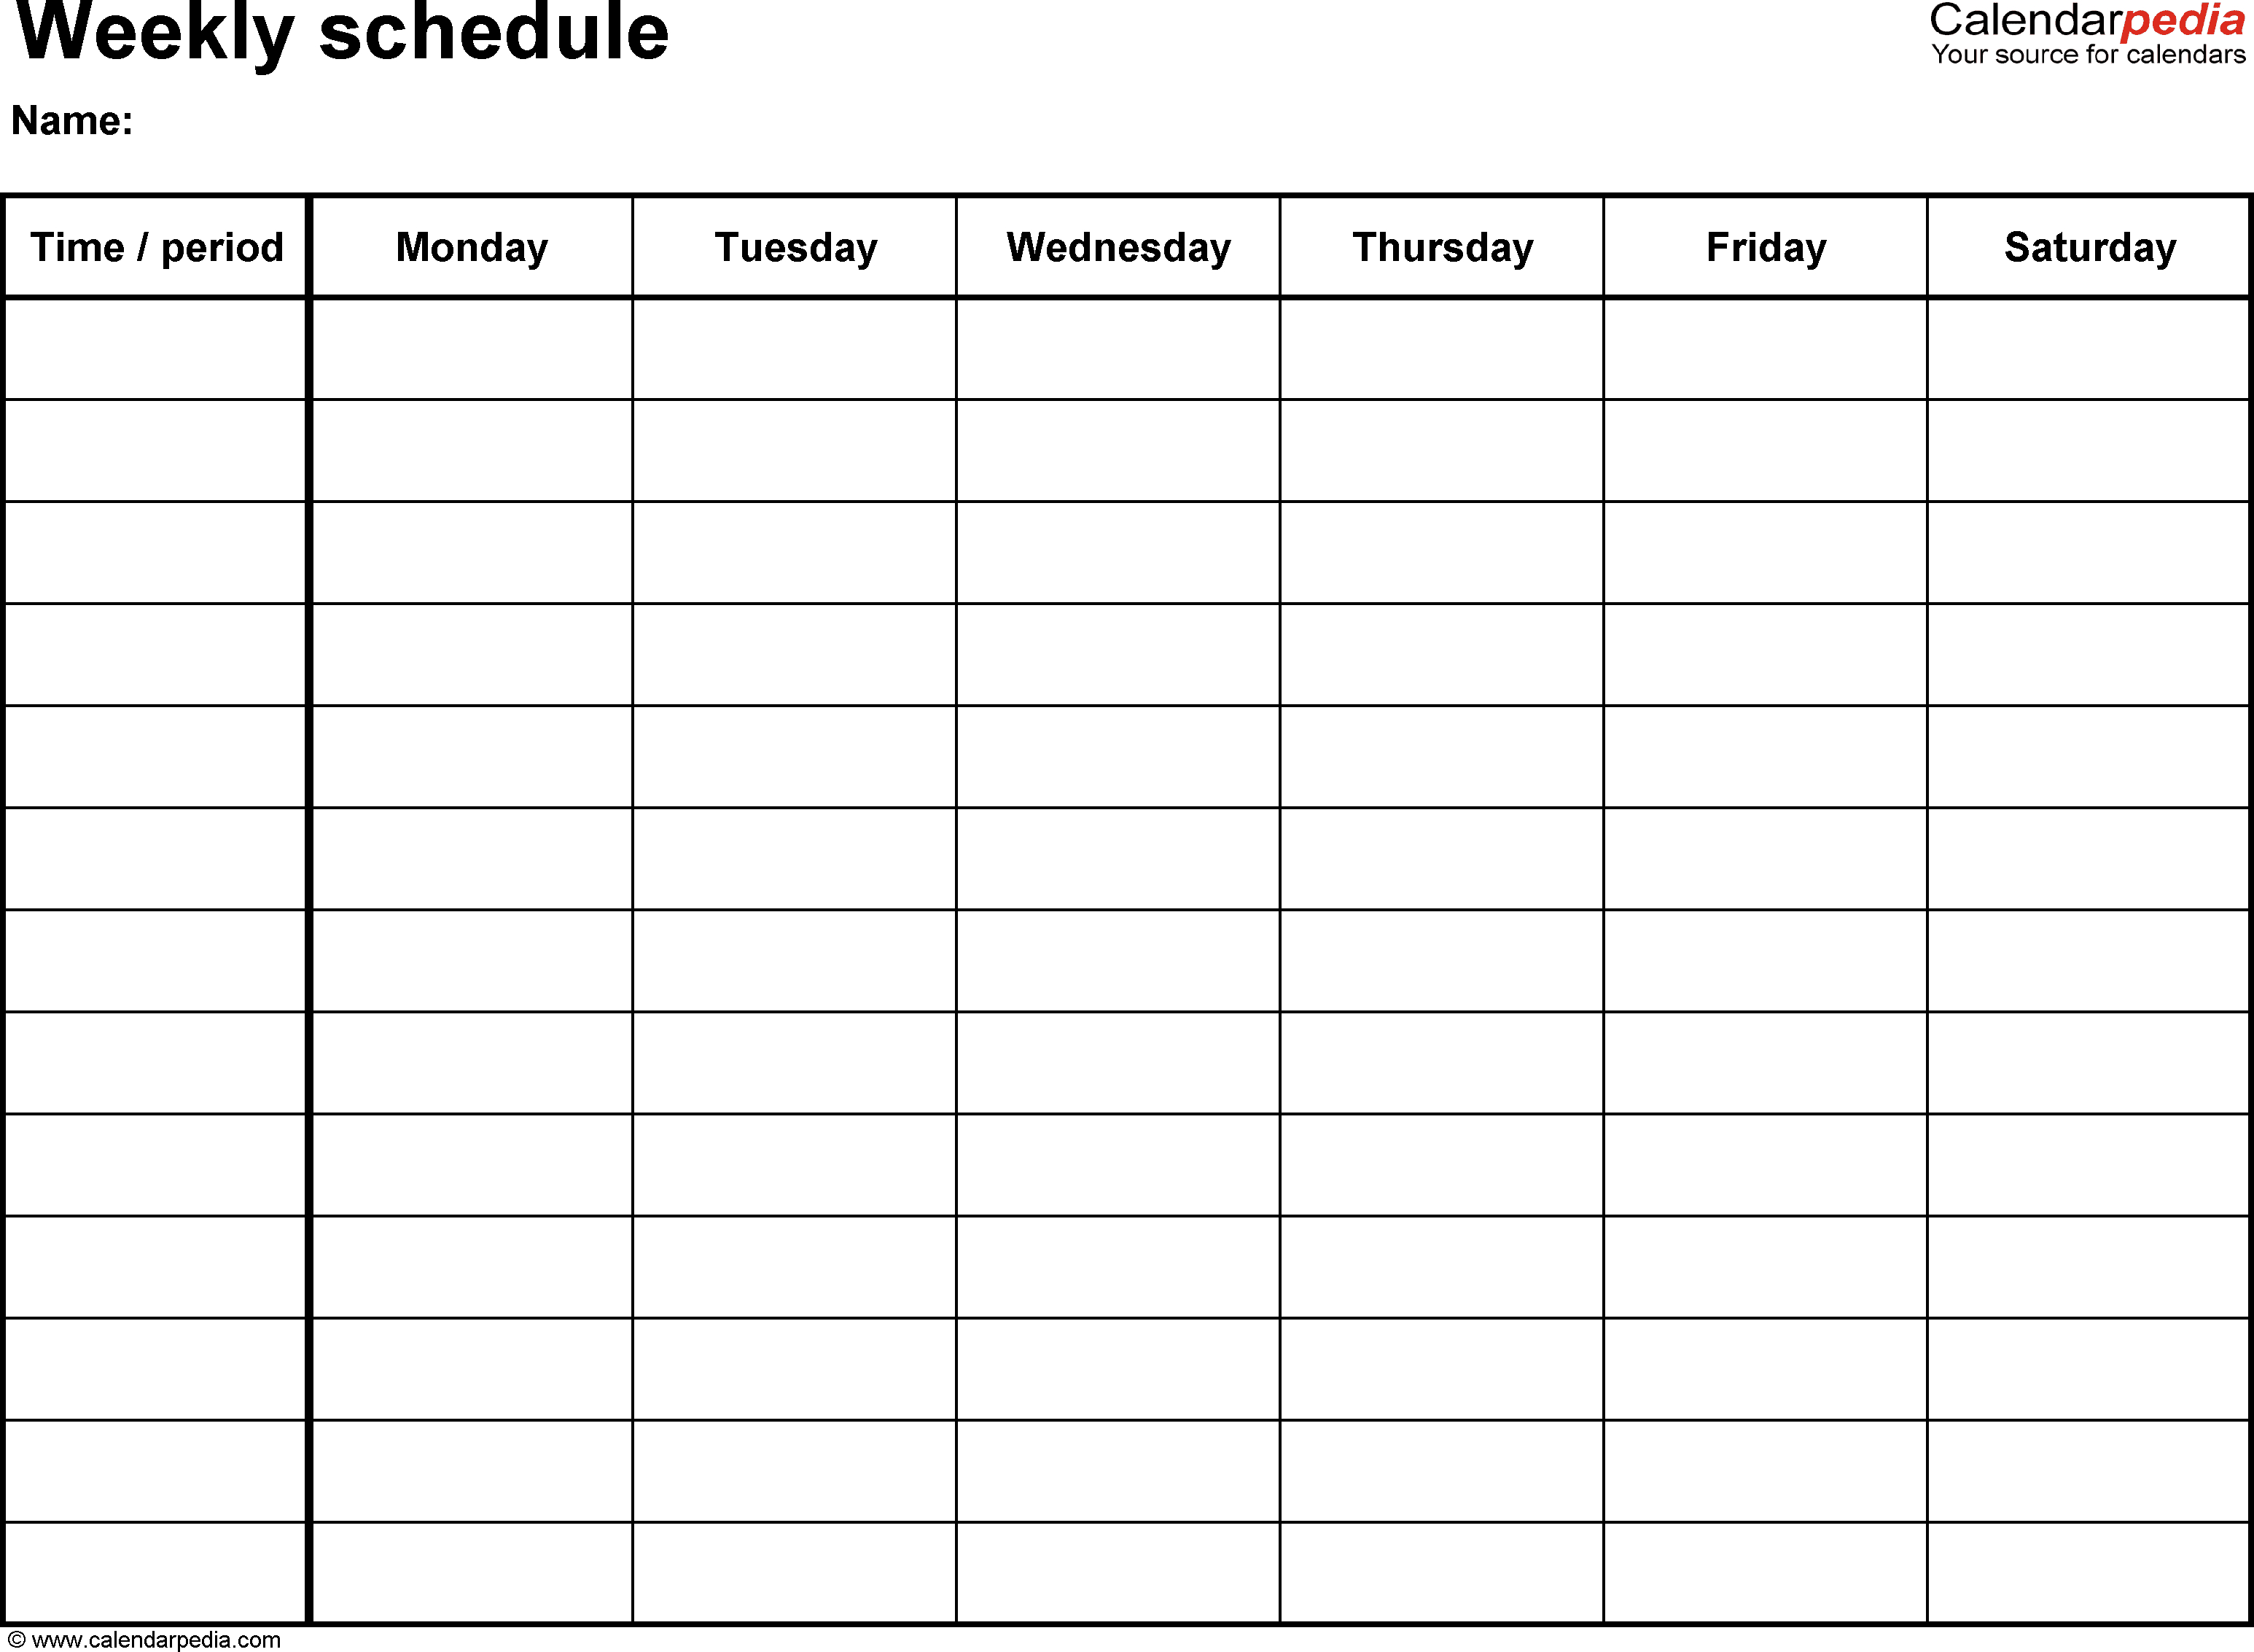 Free Weekly Schedule Templates For Pdf   18 Templates Intended For Monthly Work Schedule Template Pdf